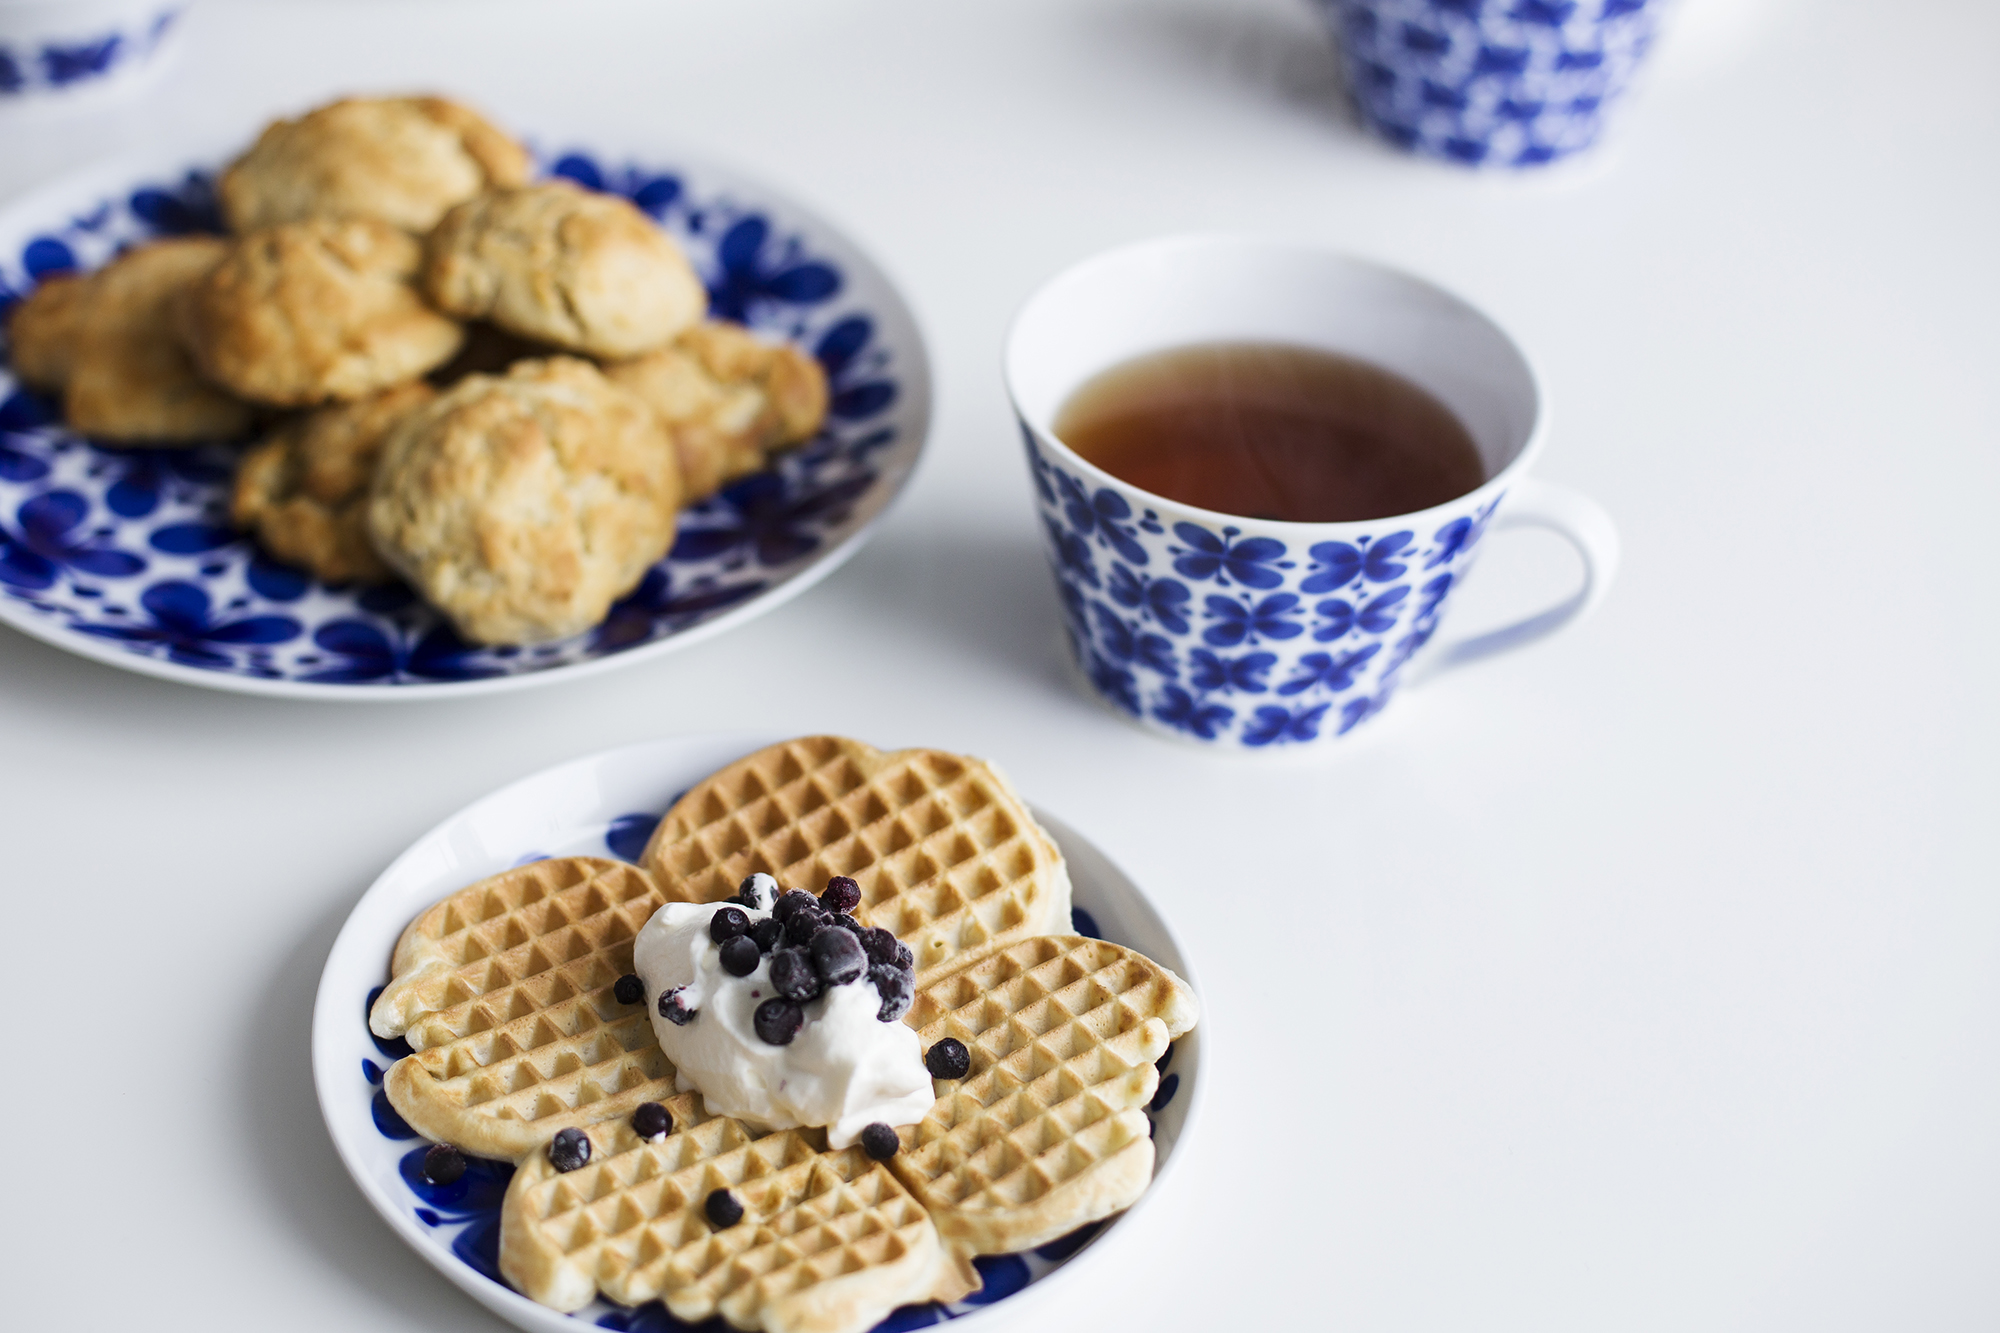 A big part of my life is to eat wonderful breakfasts! Here is one of my favourites: Waffles, Scones and tea.